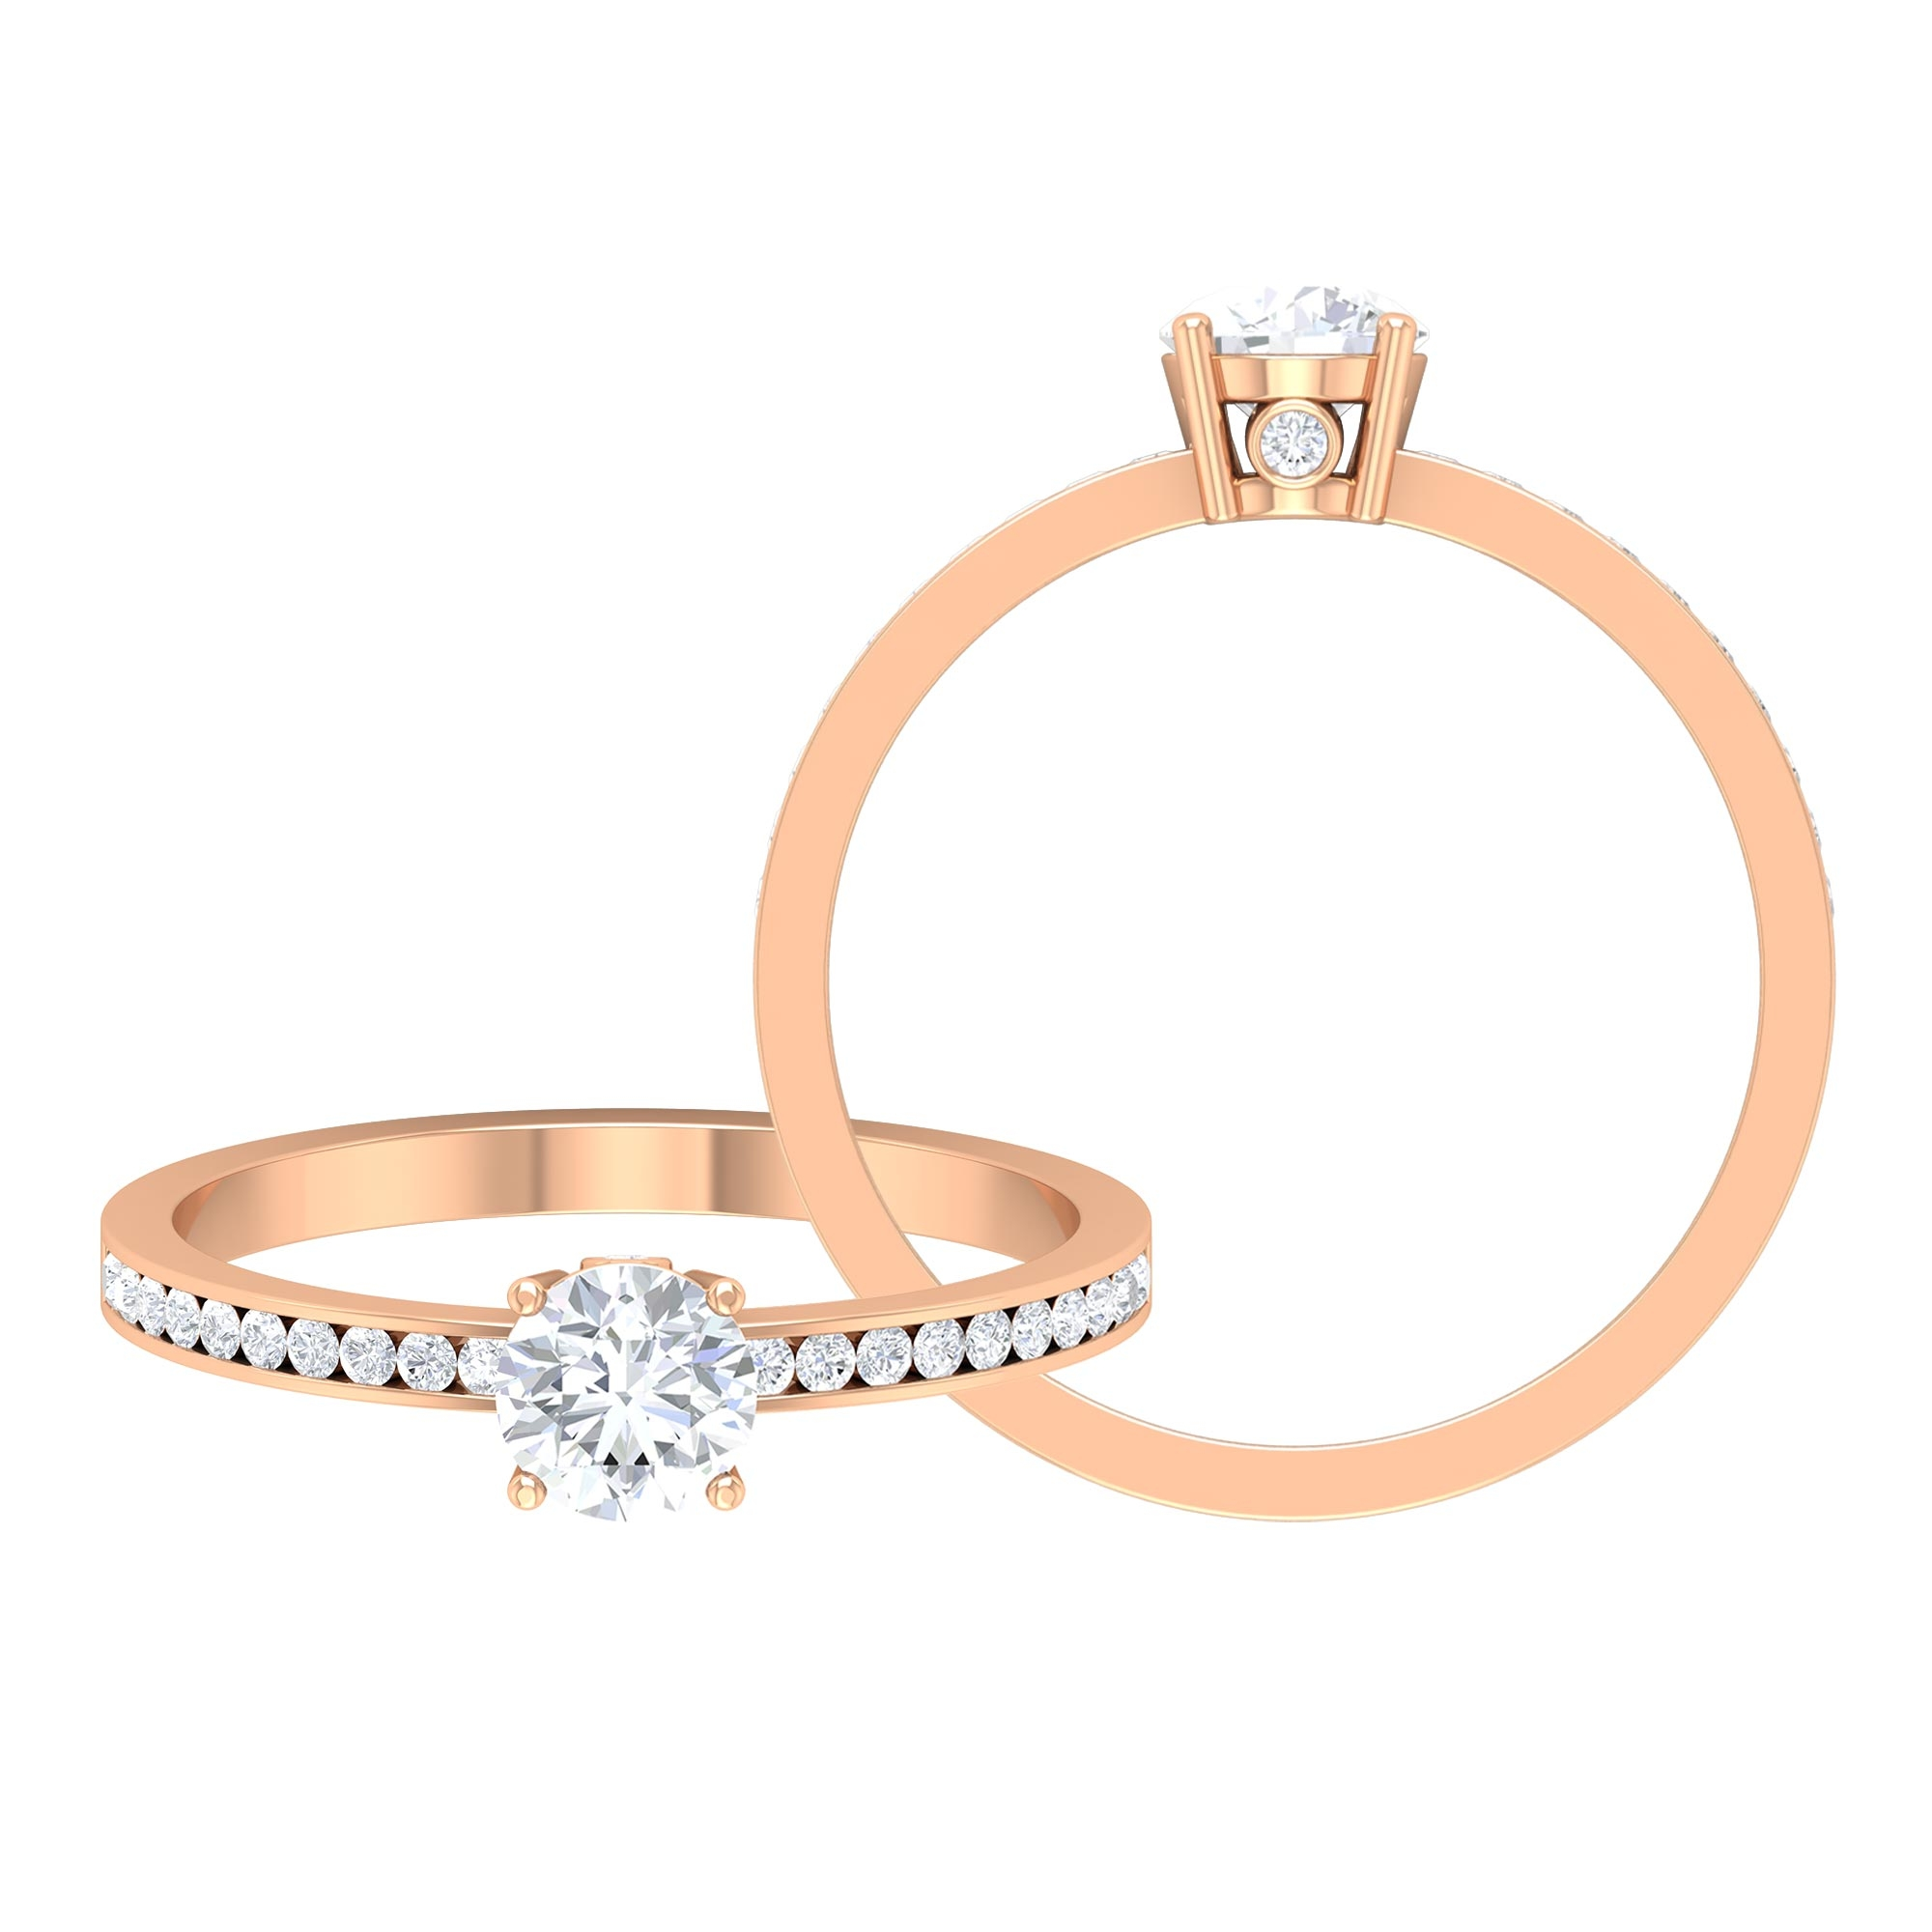 5 CT Round Cut Solitaire Ring in Prong Setting with Hidden Diamond